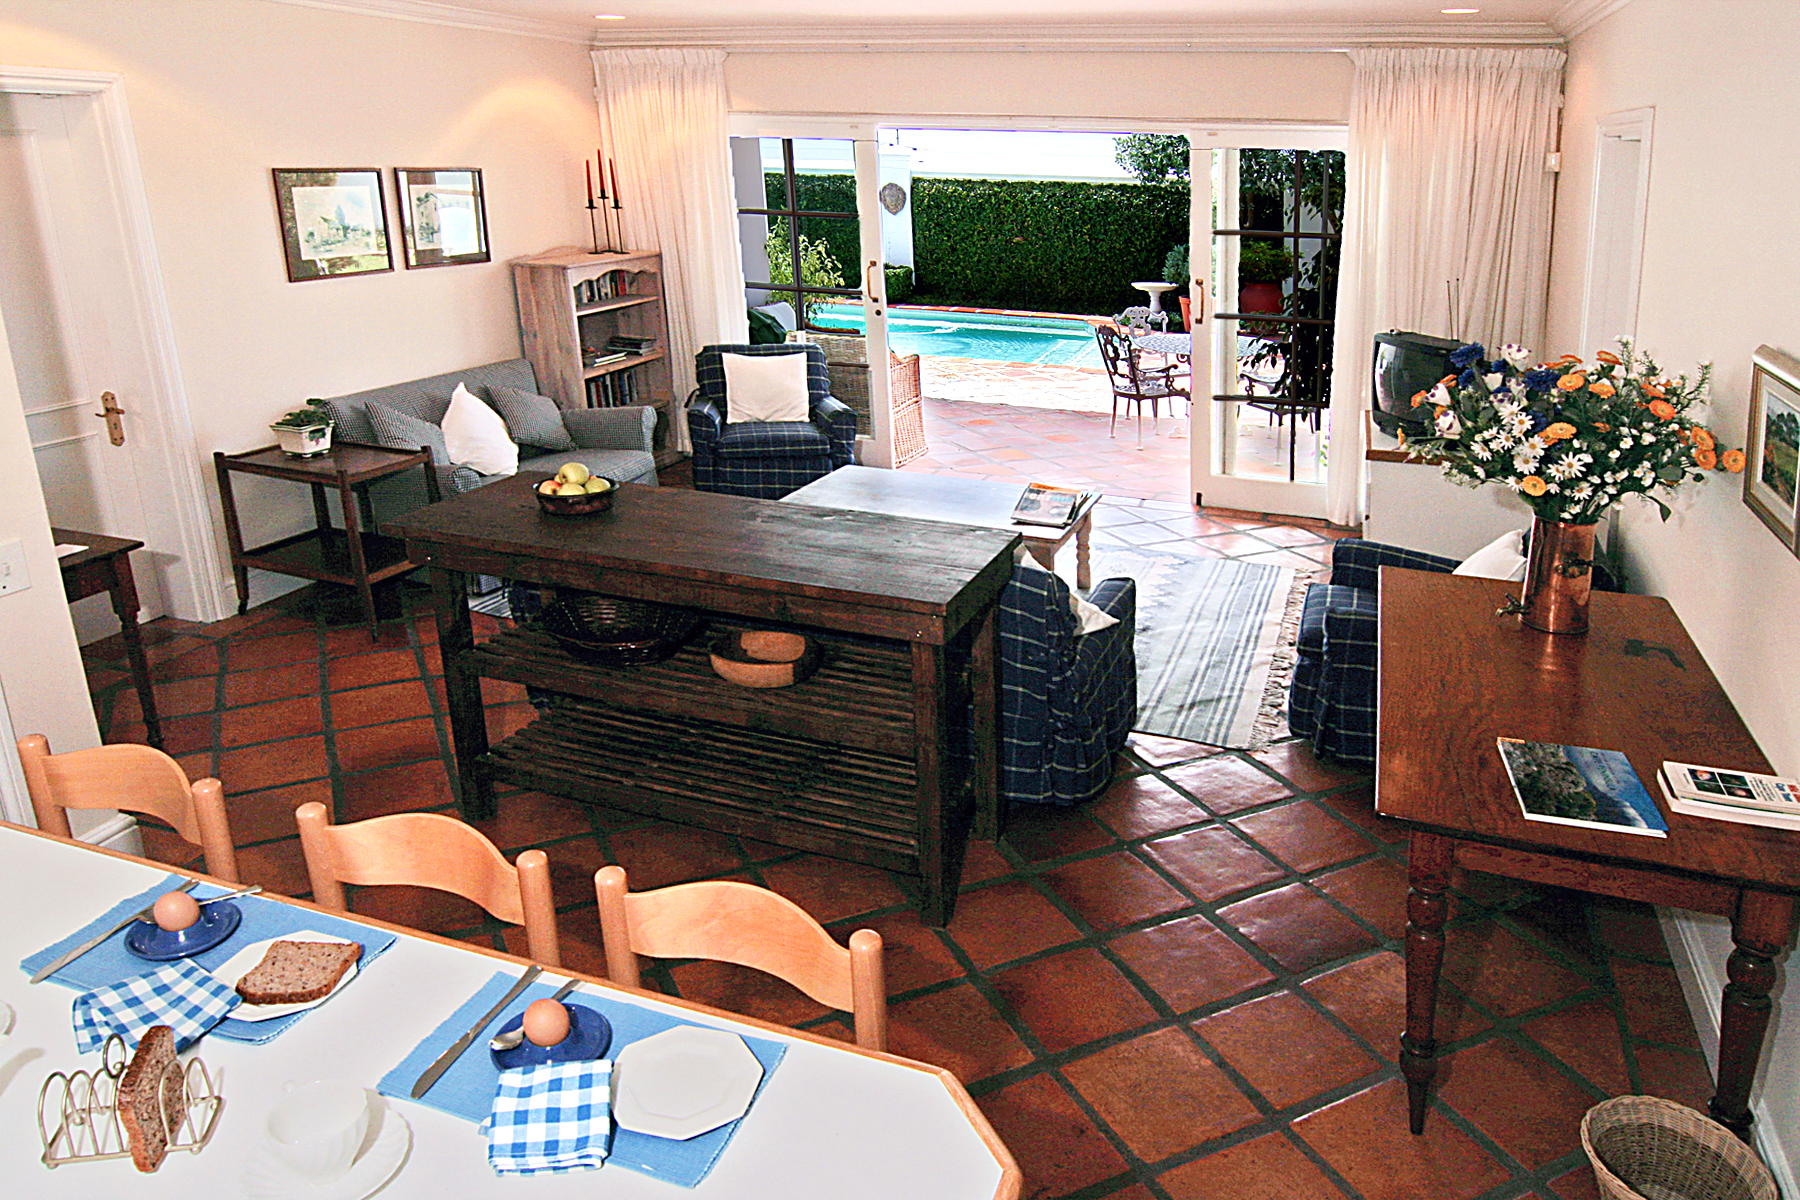 Mel's Place Family room IMG_4443a